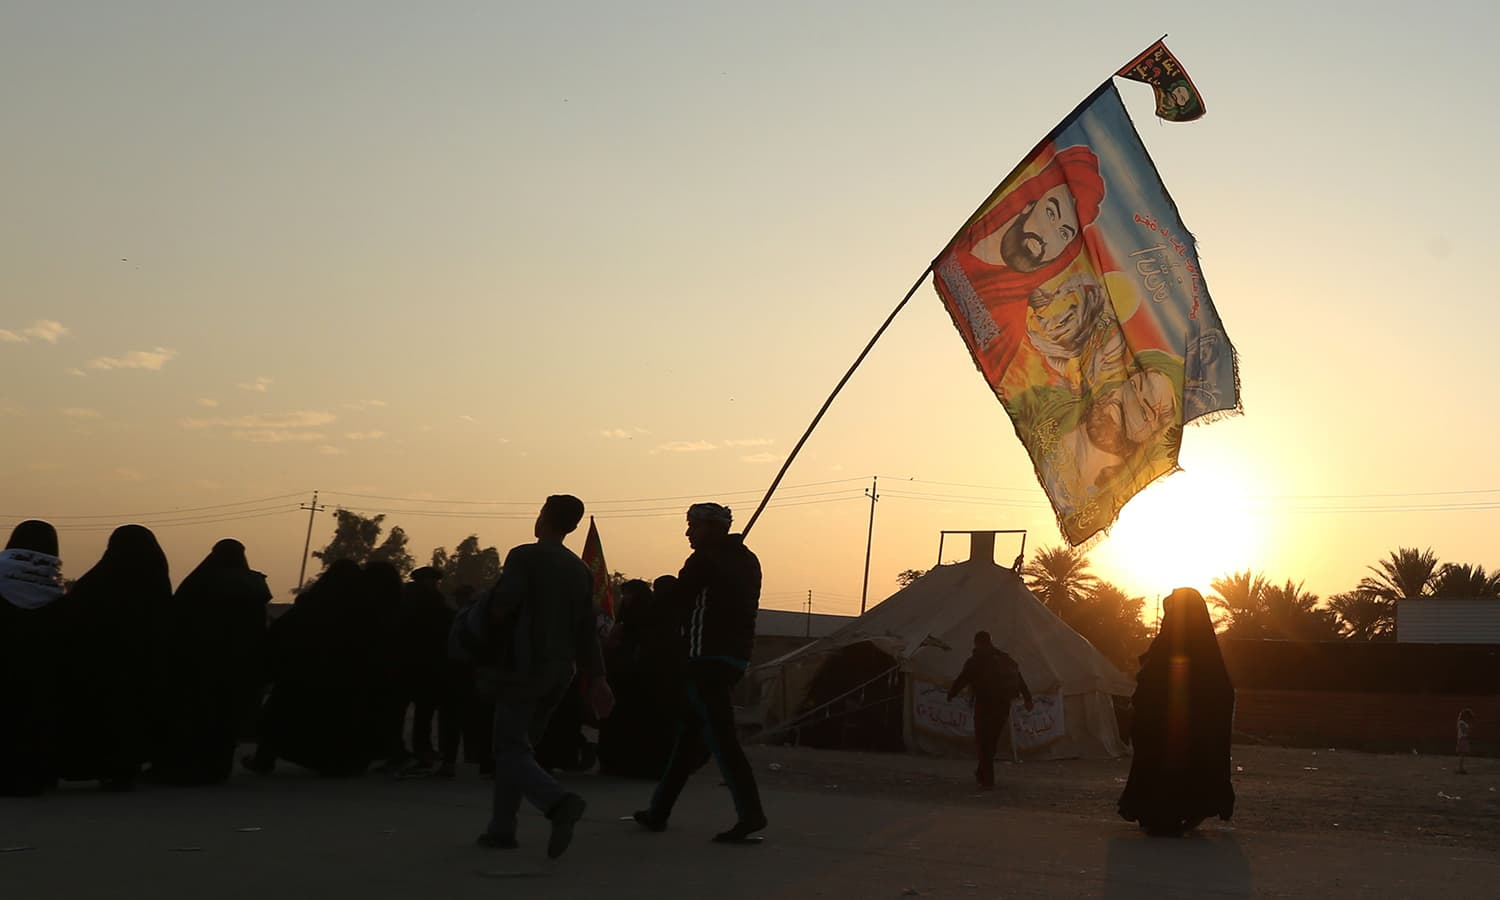 Shia pilgrims march to Karbala during the Arbaeen ritual in Baghdad, Iraq on Sunday. The Shia ritual of Arbaeen marks the end of a 40-day mourning period for the killing of Prophet Muhammad (PBUH)'s grandson Imam Husain 13 centuries ago. —AP